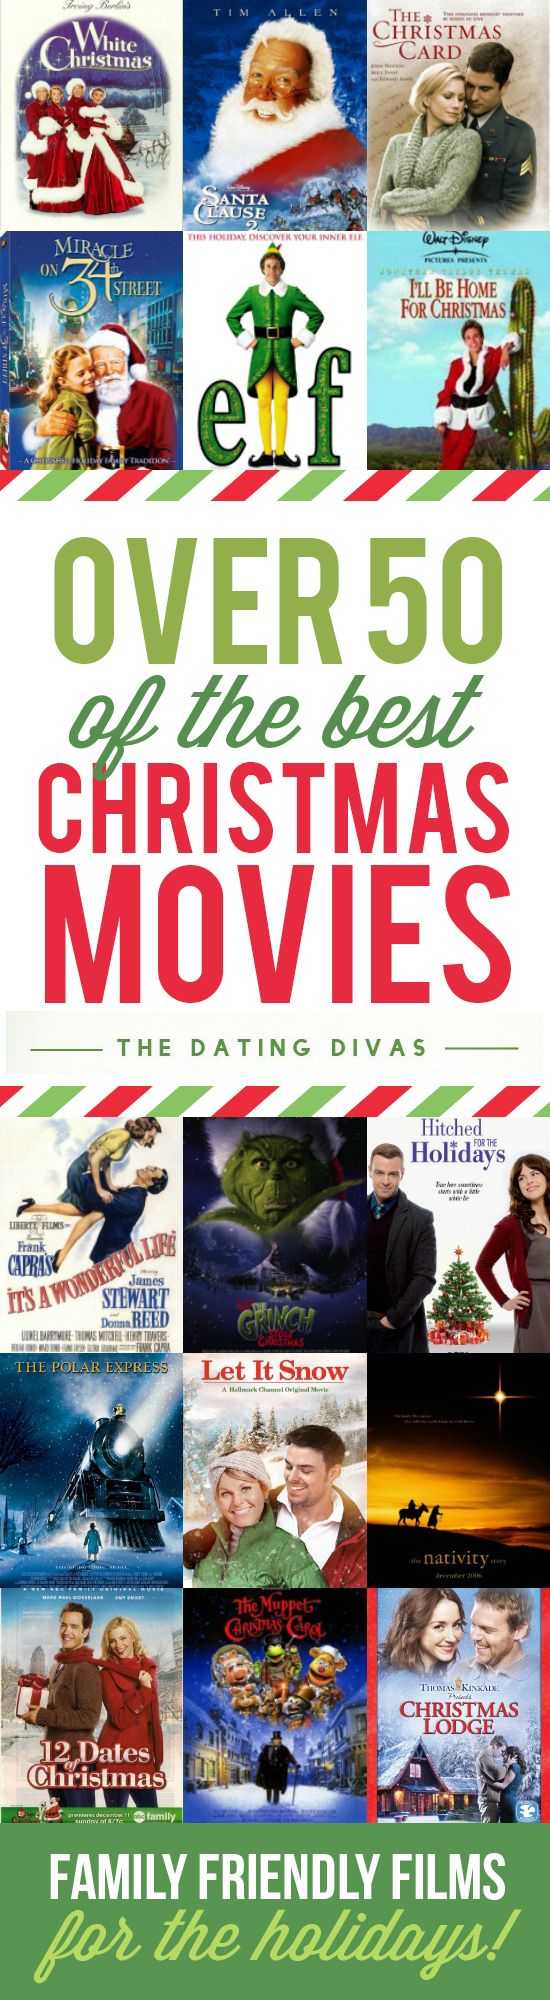 50 of the best Christmas movies all in one place! These are family-friendly films that are perfect for the holiday season. I think it's time for a Christmas Movie Marathon - who's with me?                                                                                                                                                                                 More